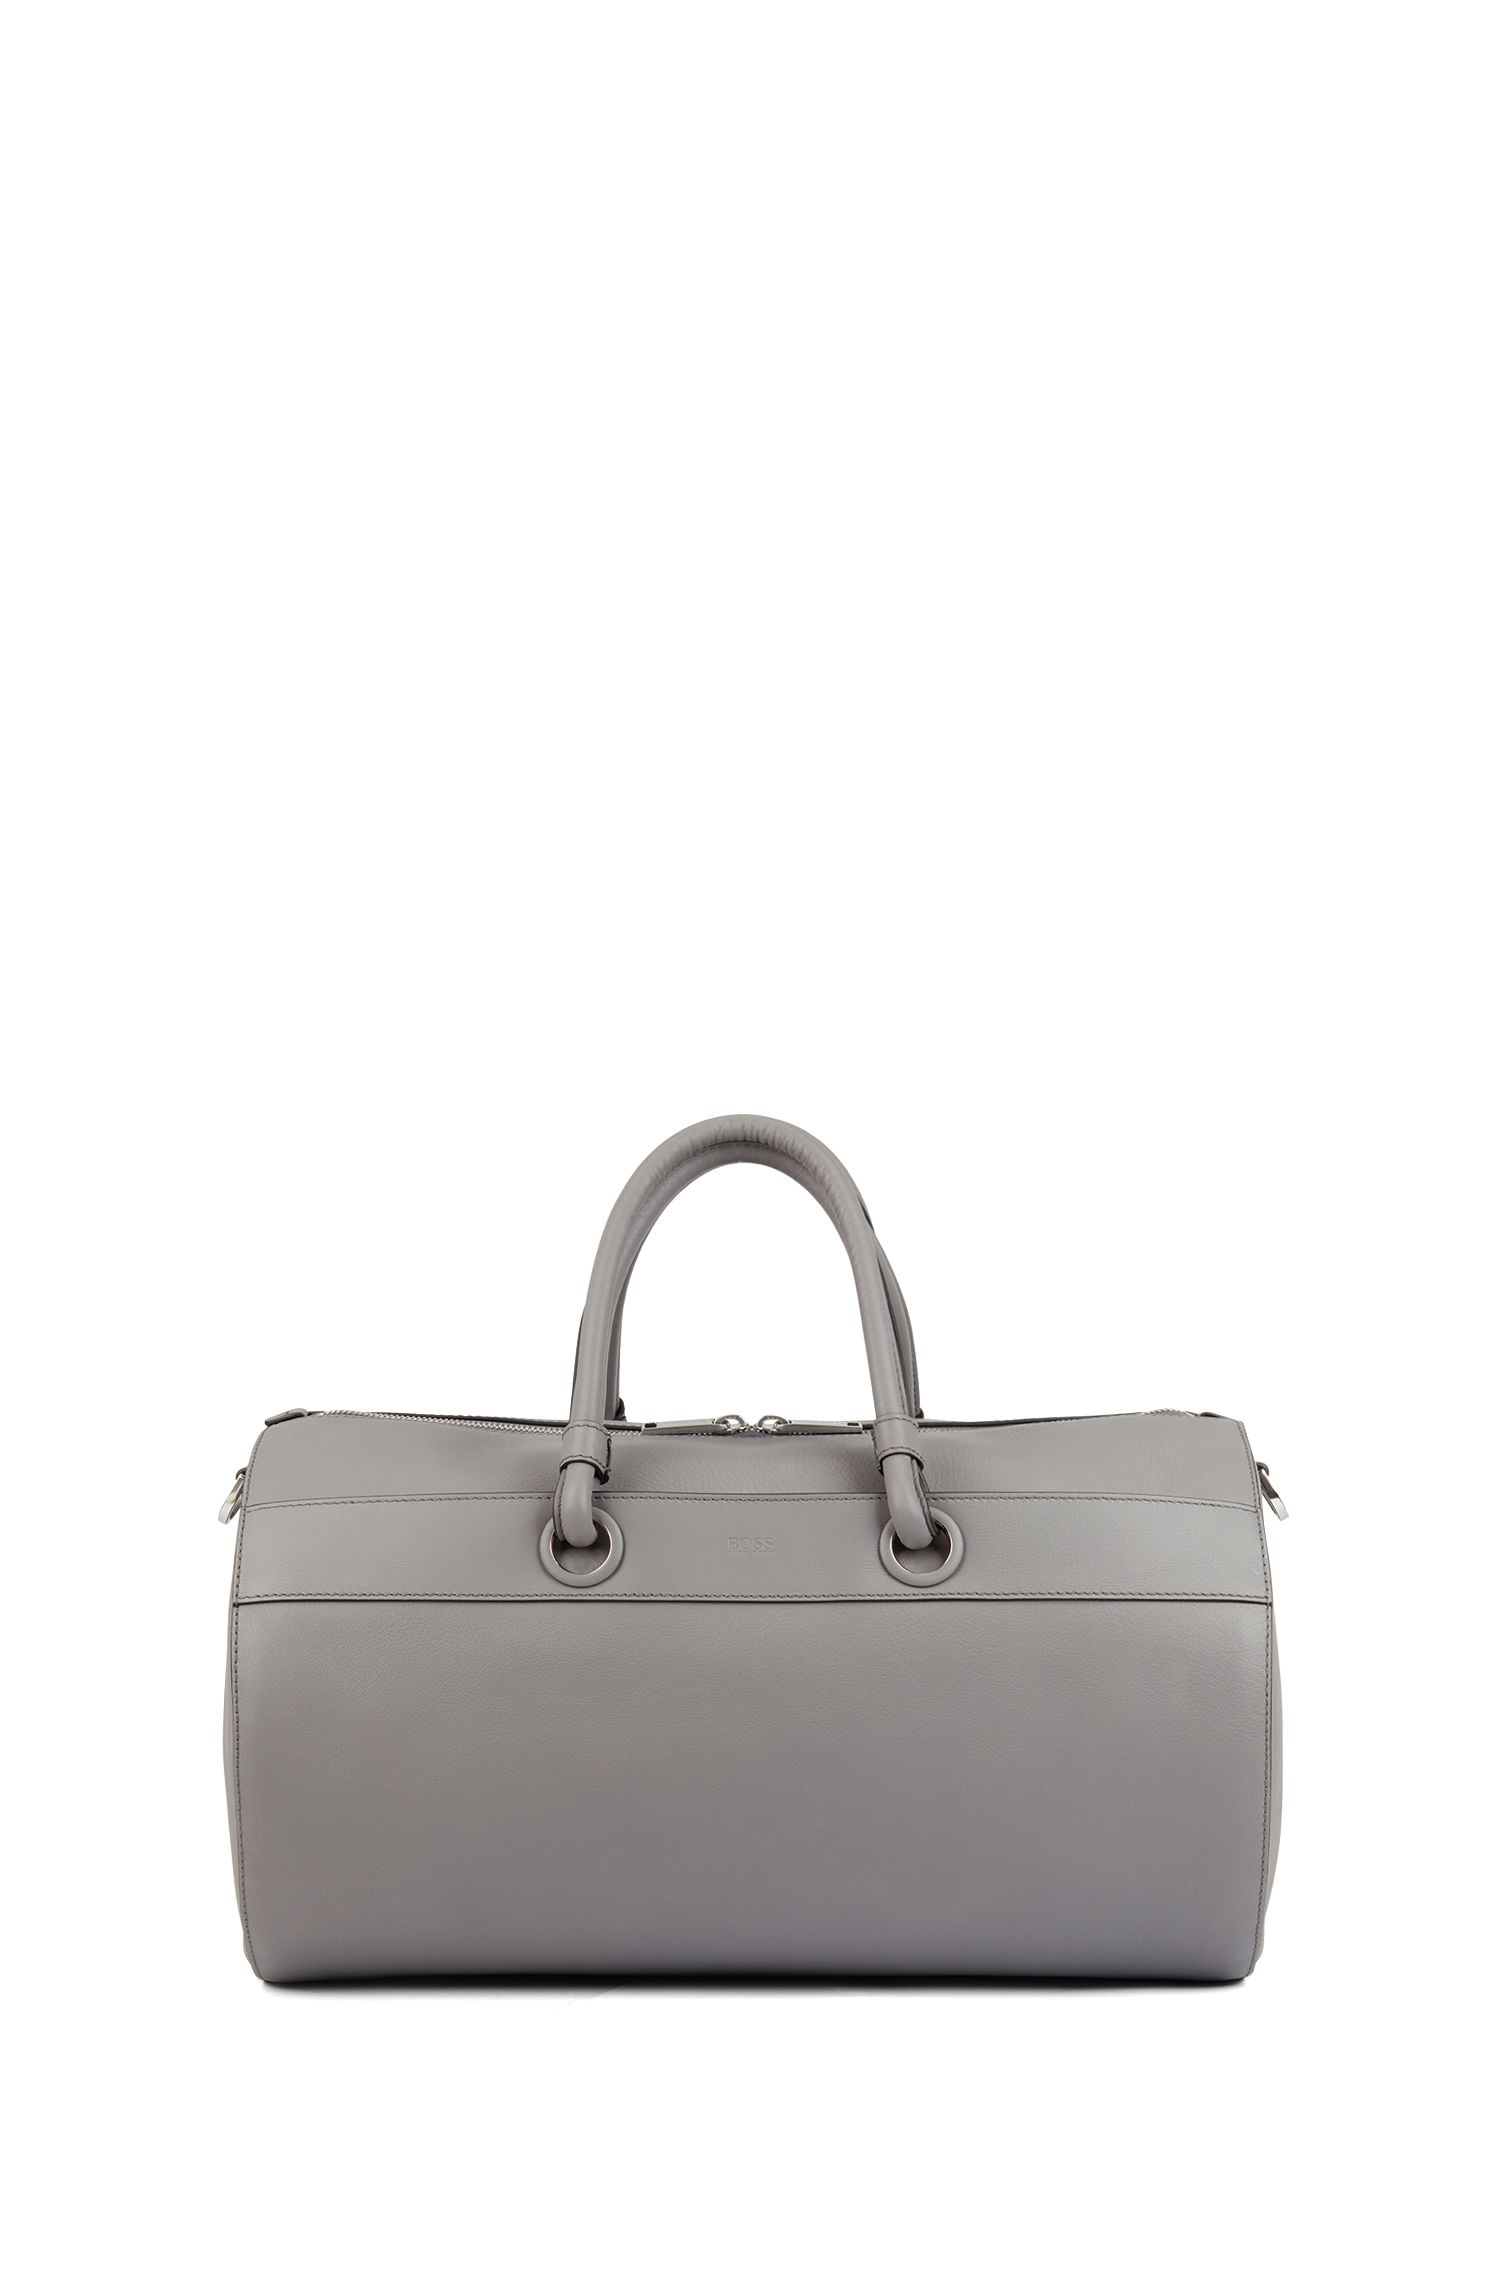 Tubular holdall in calf leather with detachable shoulder strap, Grigio